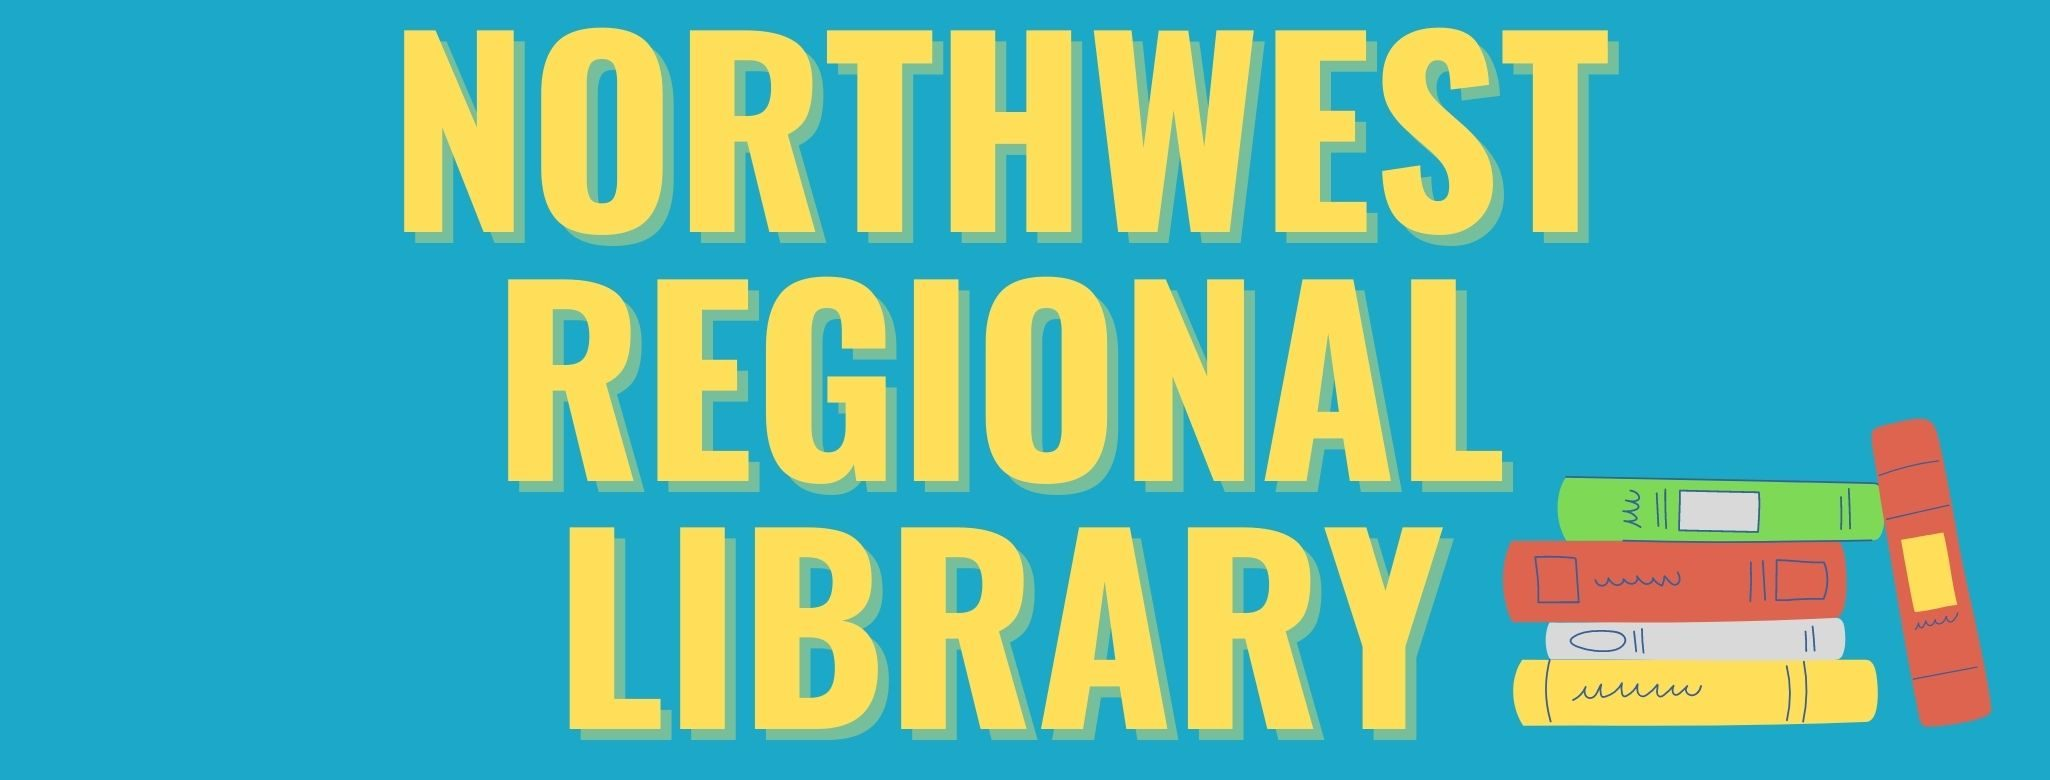 Northwest Regional Library